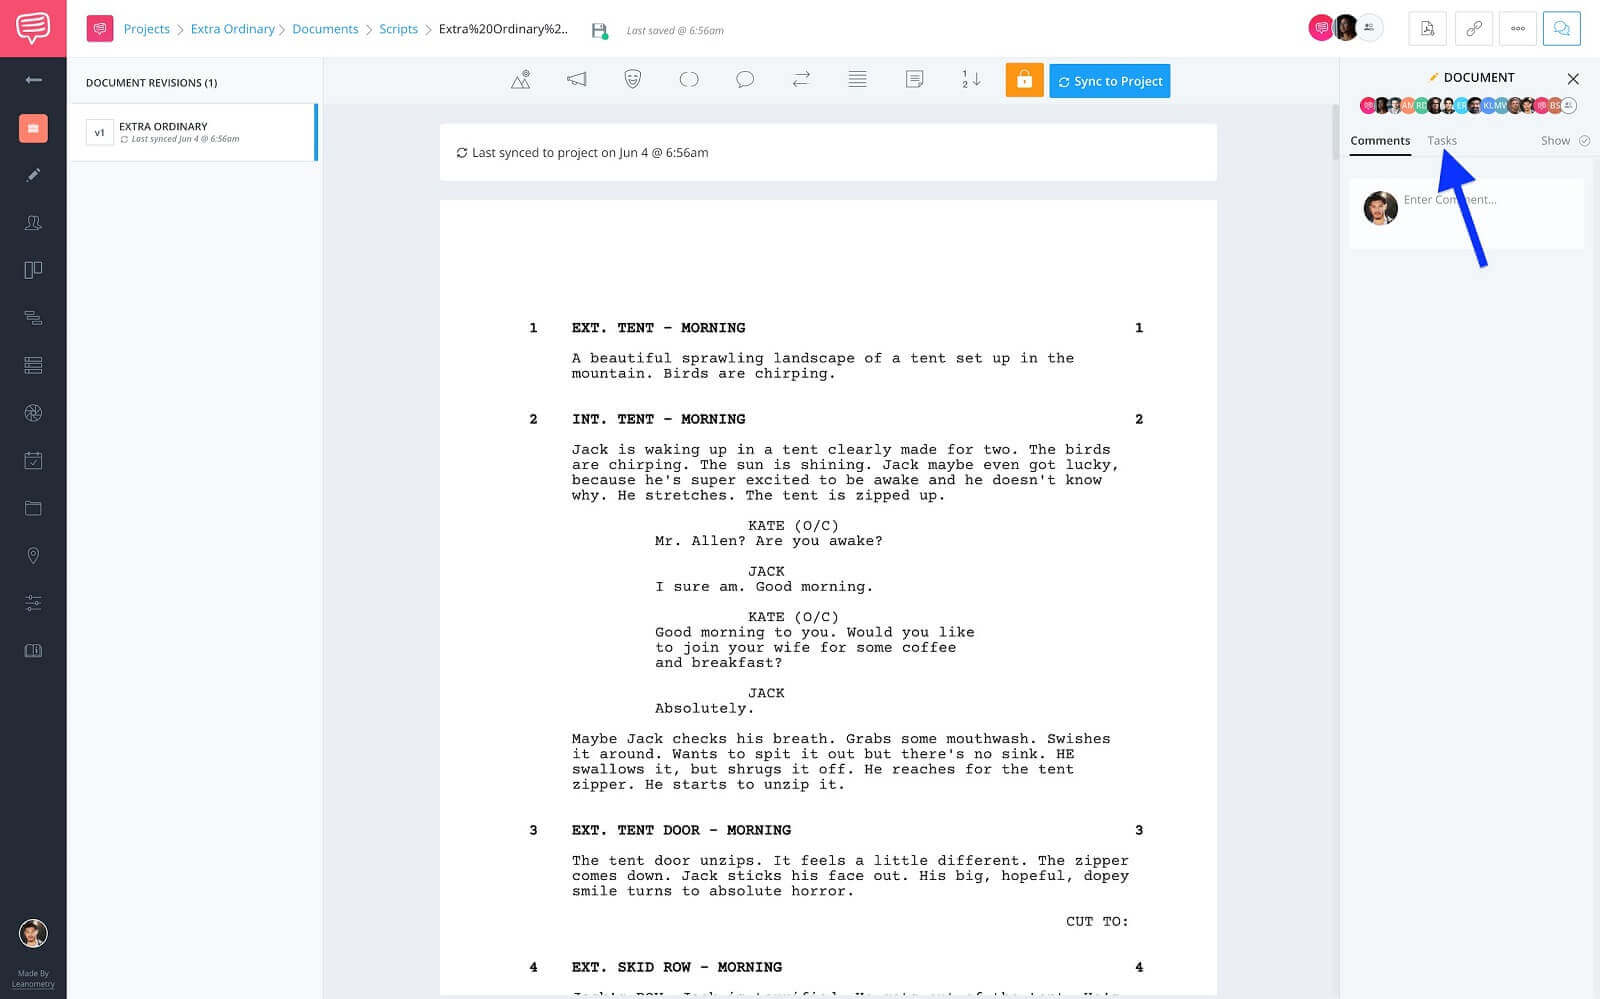 How To Set Up a Project for Success in StudioBinder - Screenwriting Pages - Click Tasks